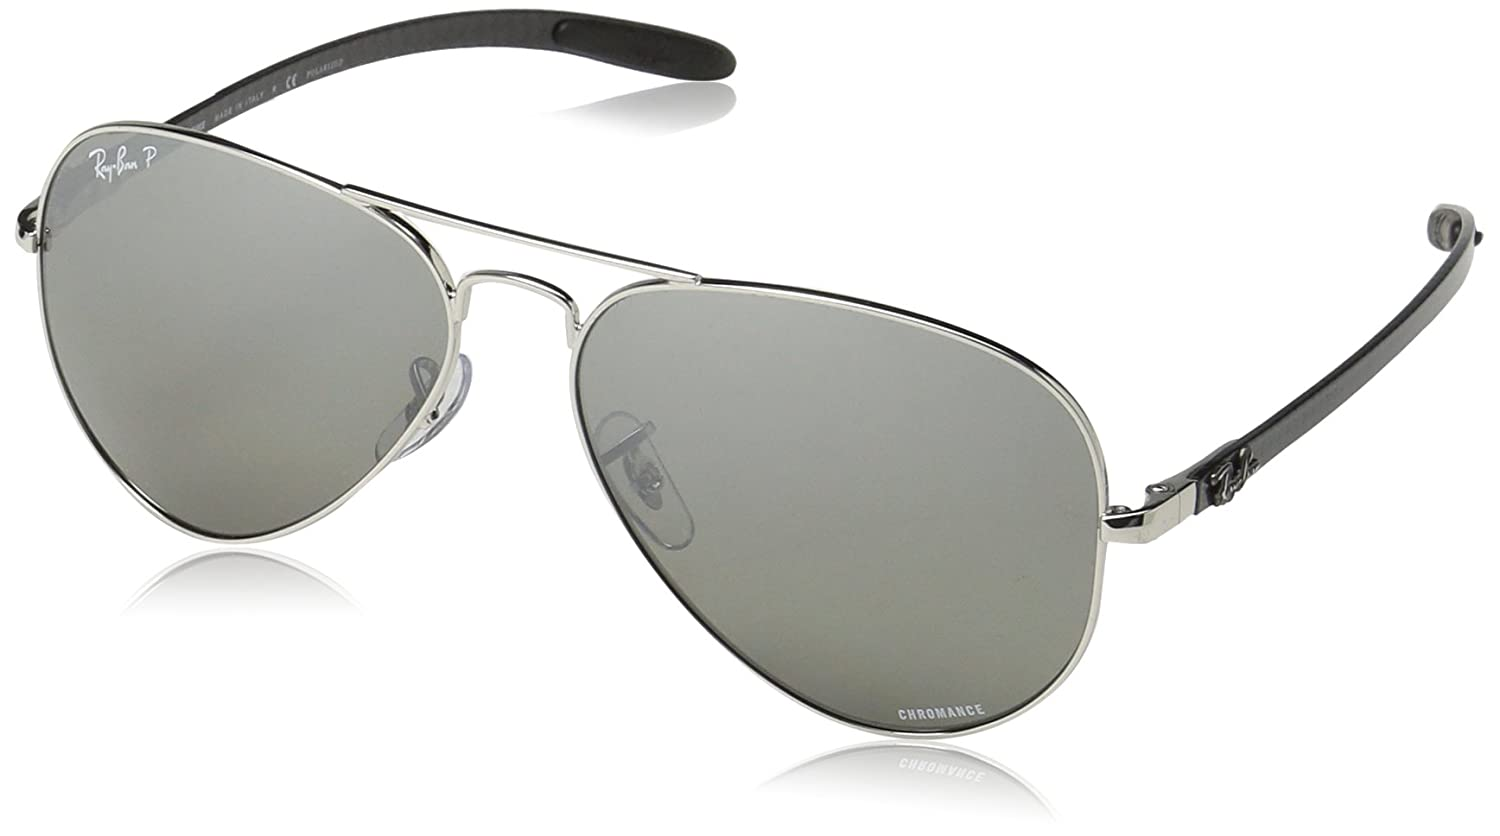 393b1f32f2ad5 Ray-Ban Chromance RB8317CH 003 5J 58mm Shiny Silver   Silver Mirror  Polarized